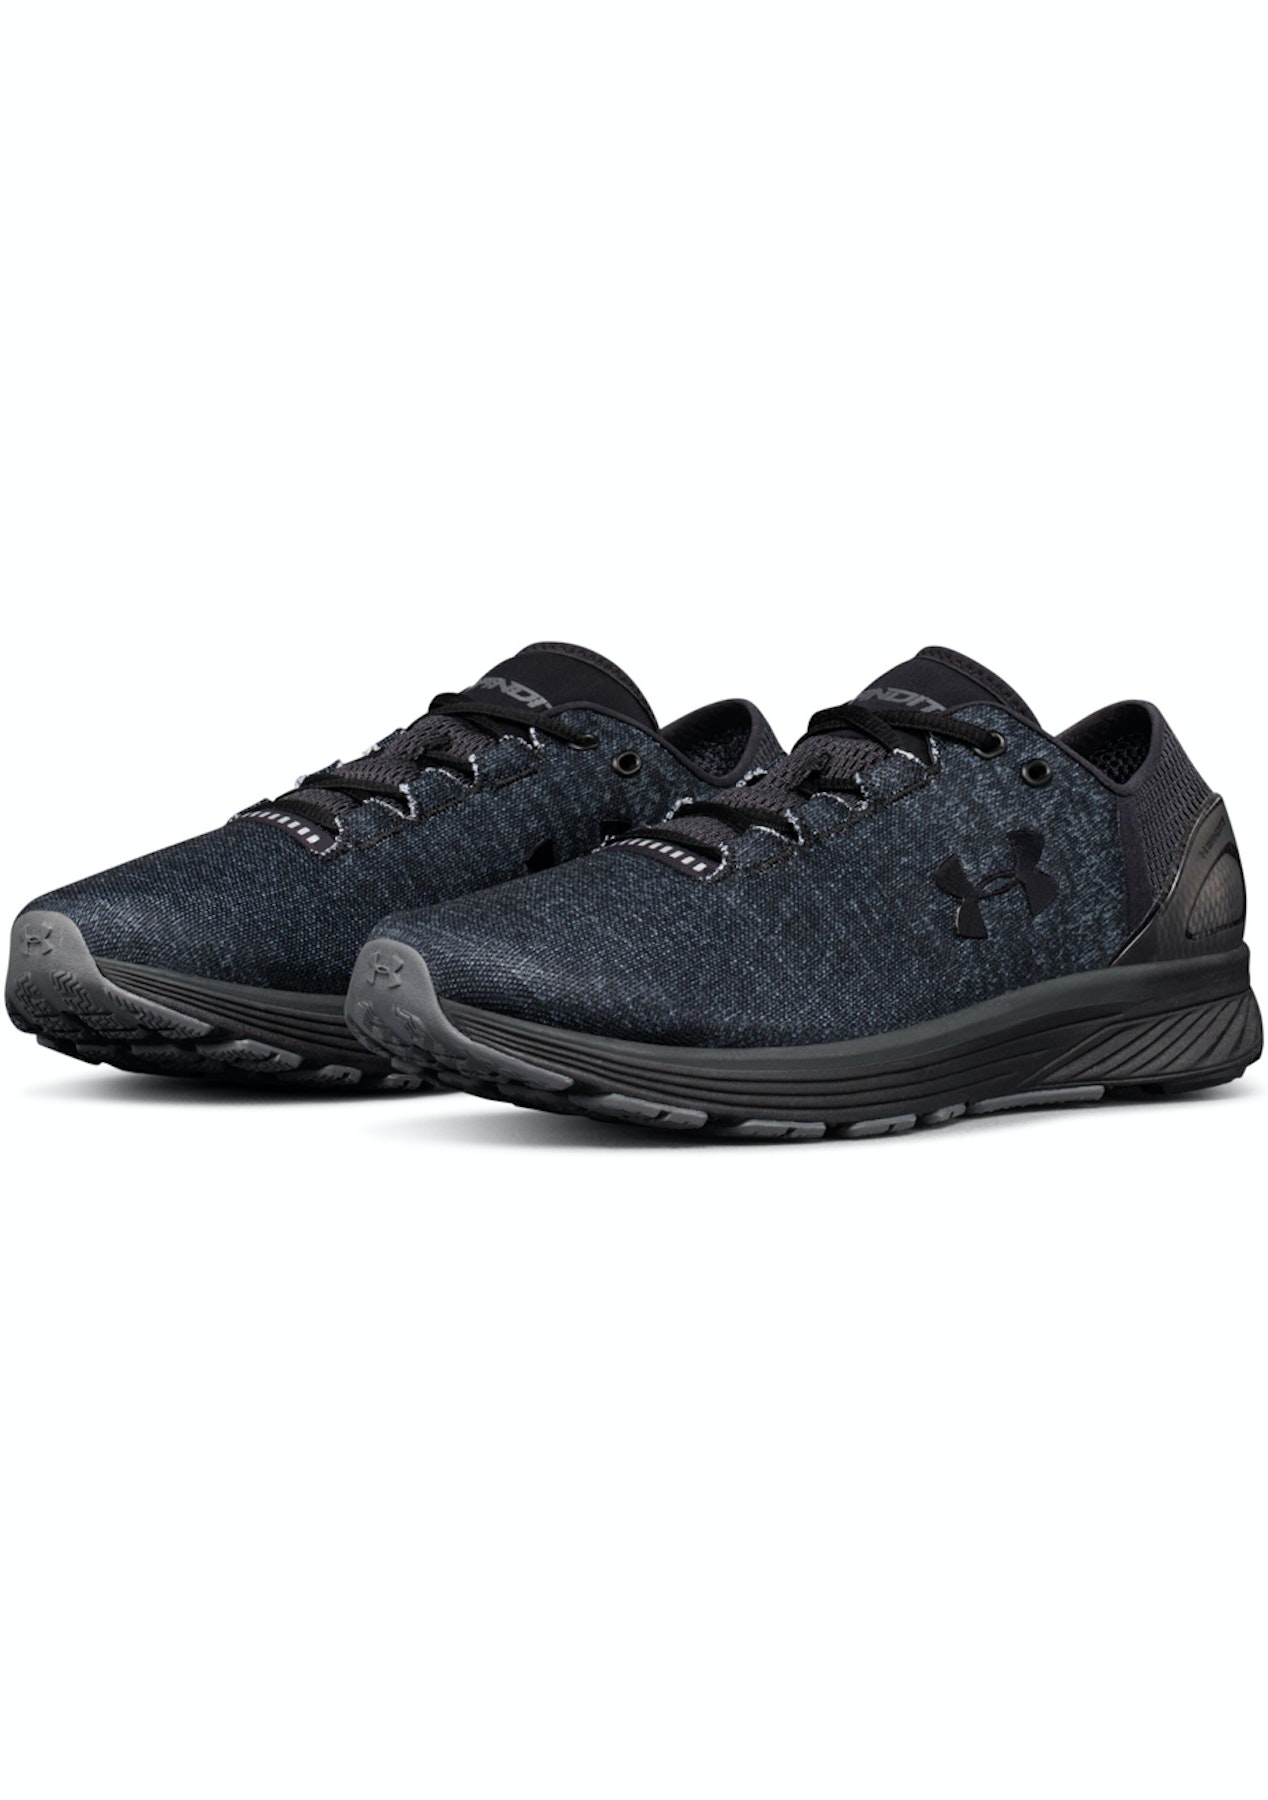 detailed look 30553 afa41 Under Armour - Mens Charged Bandit 3 - Black/Stealth Gray